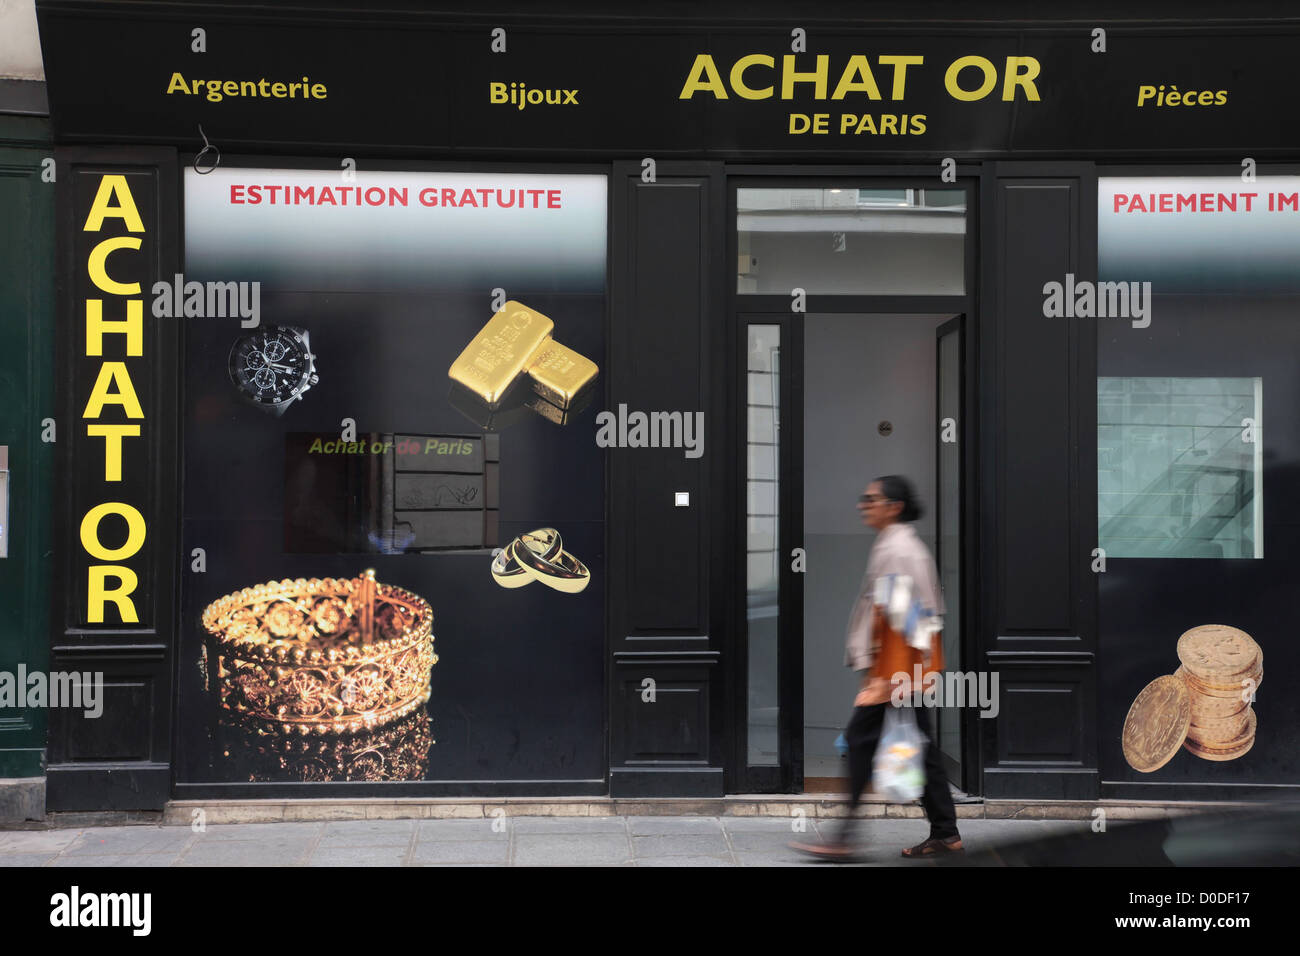 REPURCHASING OF GOLD ITEMS RUE DES FRANCS-BOURGEOIS PARIS (75) FRANCE - Stock Image